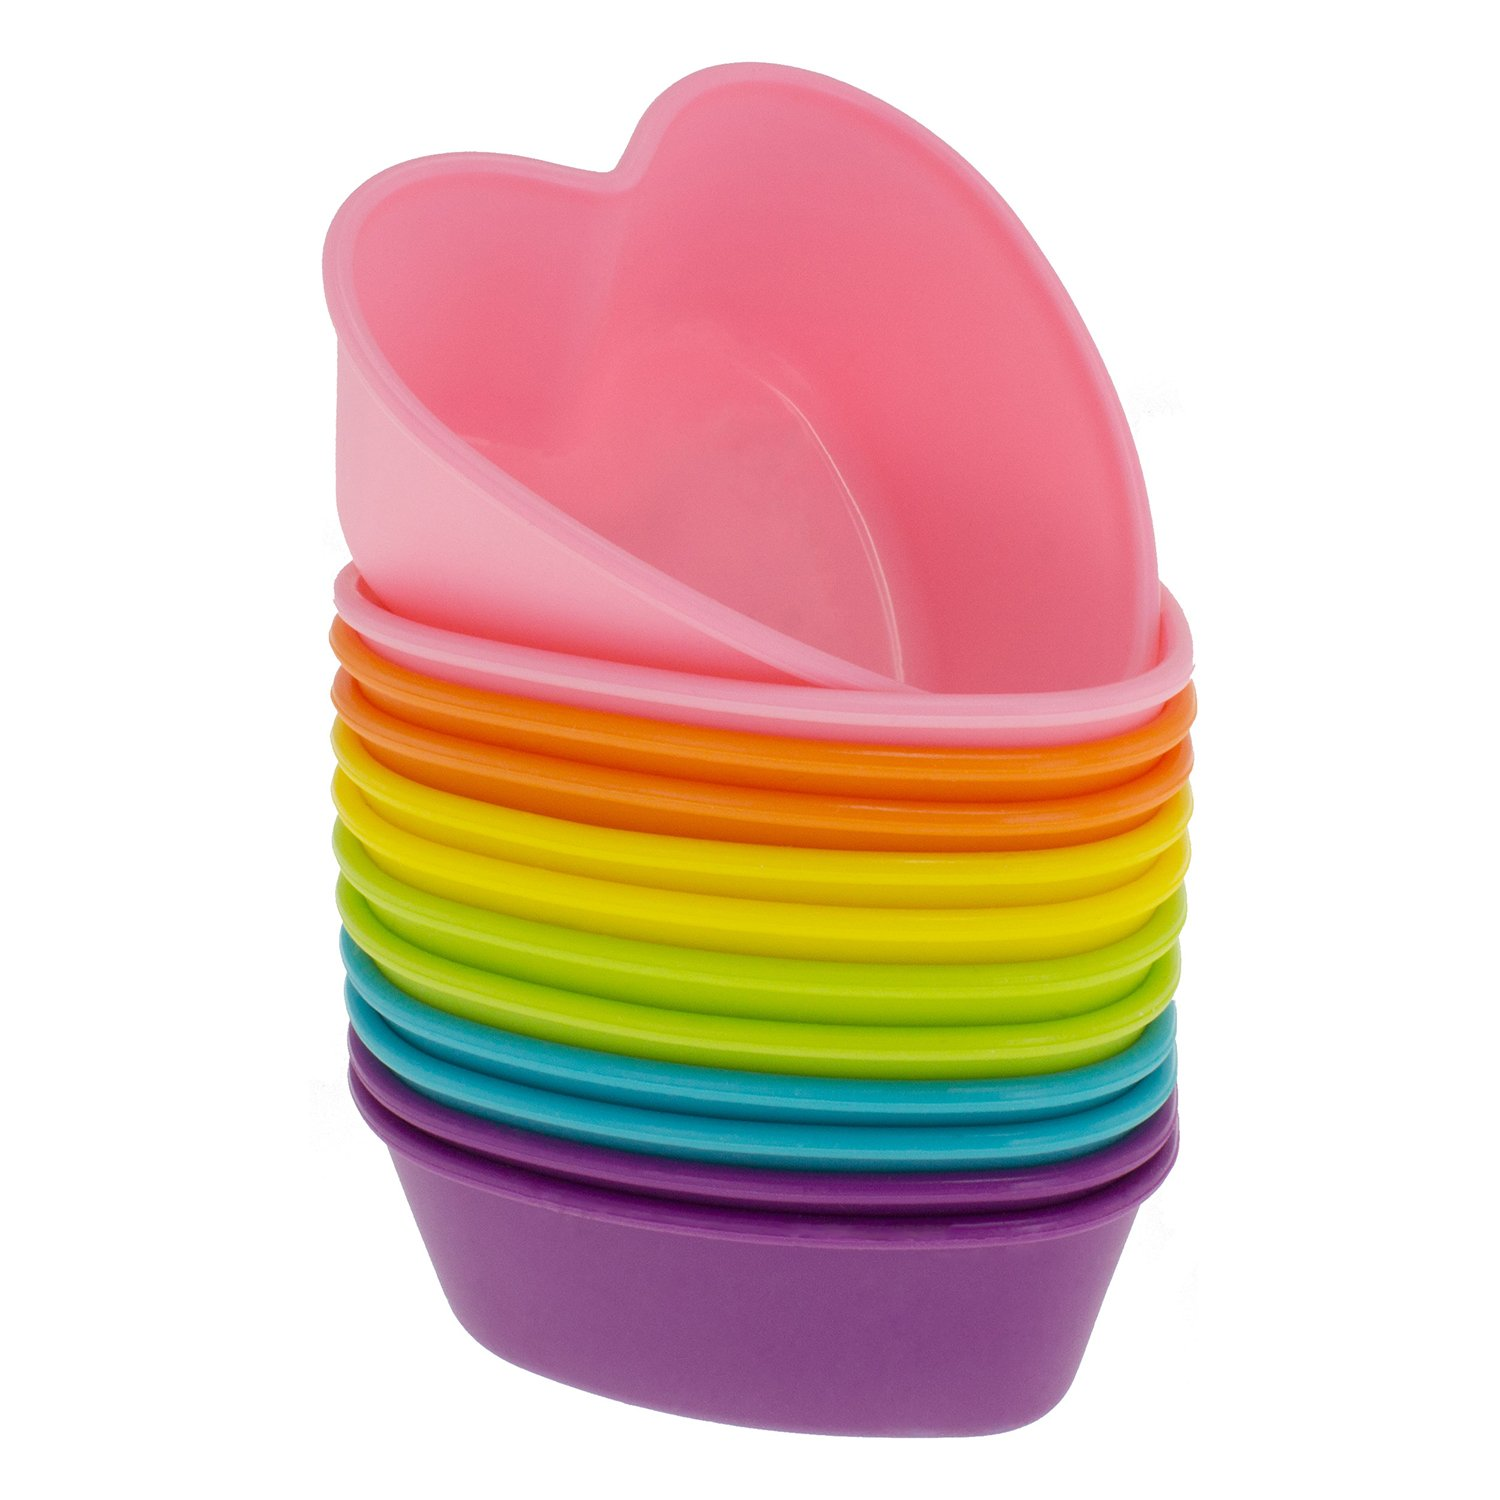 Freshware Silicone Cupcake Liners / Baking Cups - 12-Pack Muffin Molds, Heart, Six Vibrant Colors